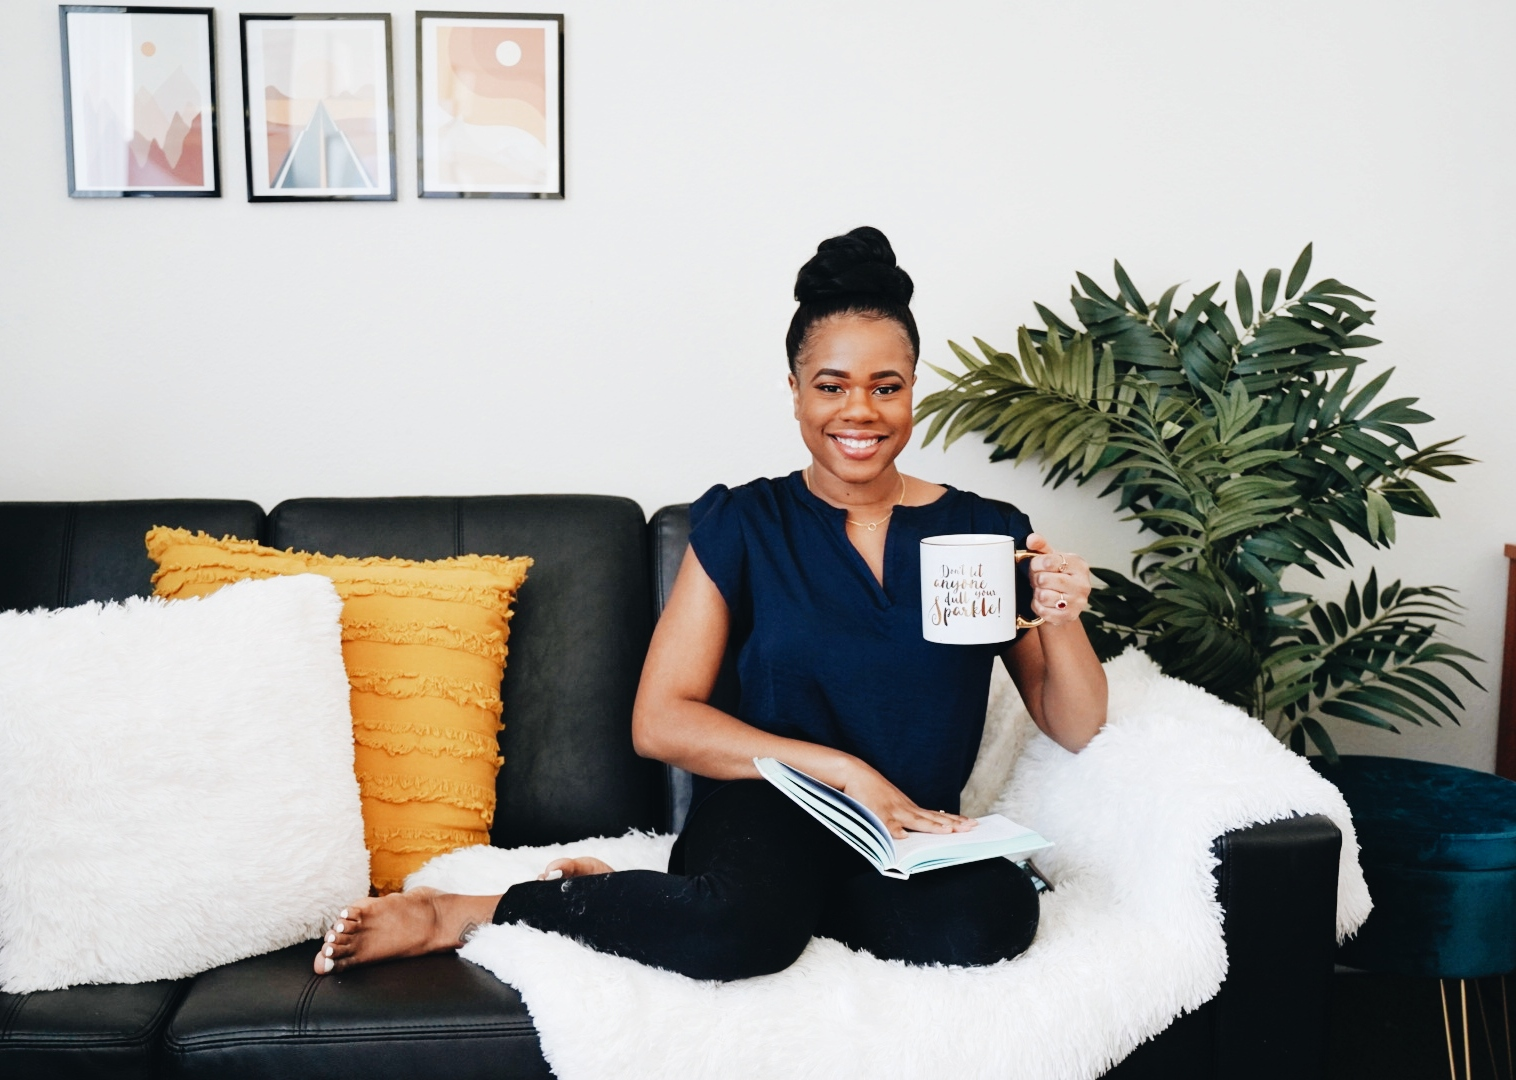 8 Productive Ways to Spend Your Free Time | SincerelyVictoriaT.com